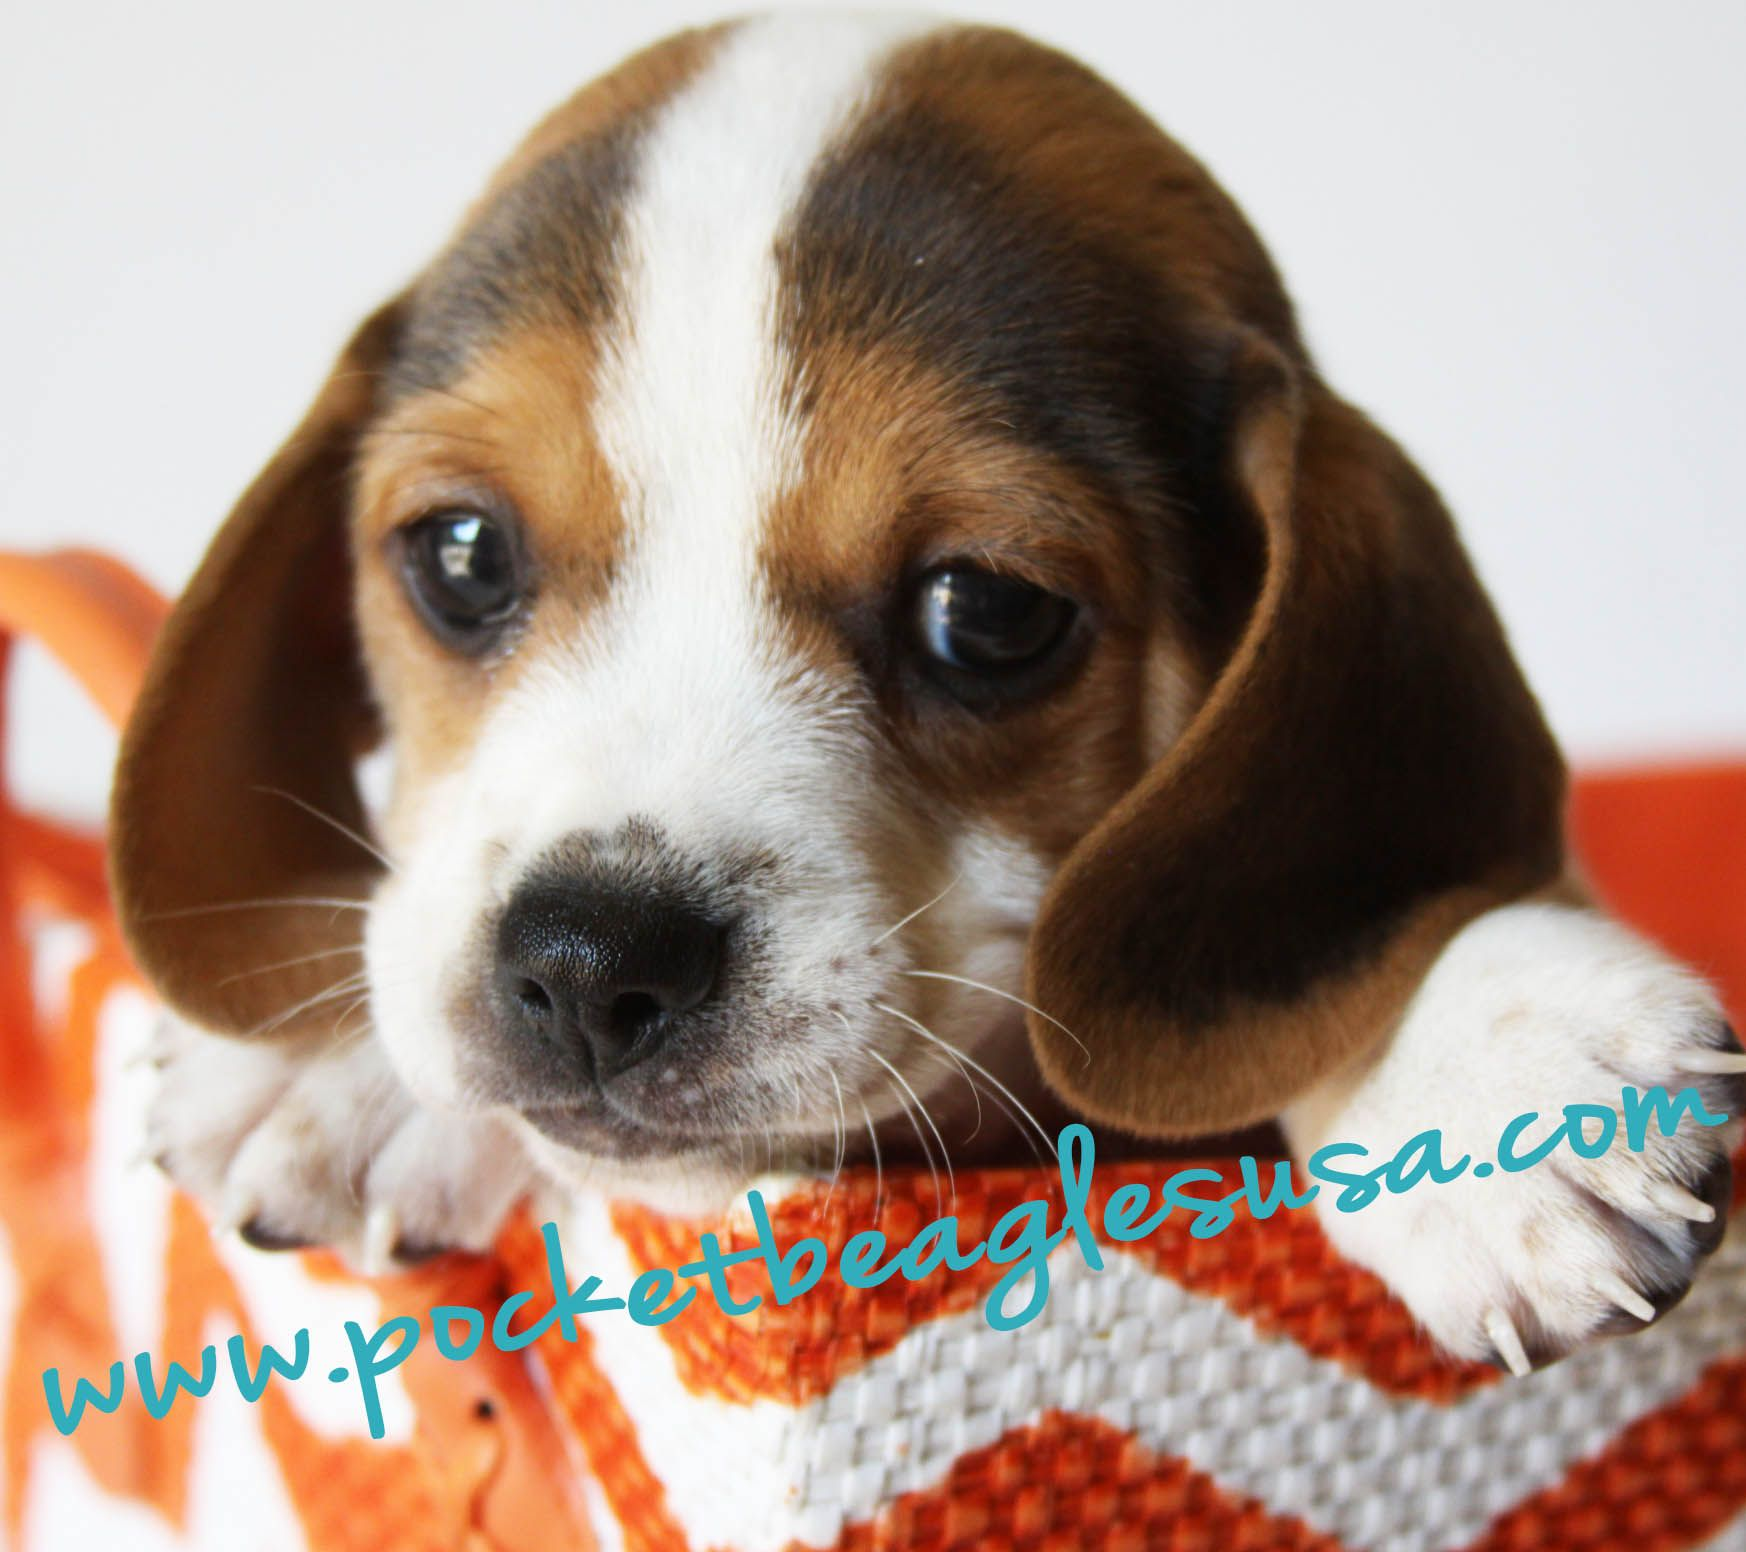 Small Beagle Pocket Beagle Purebred Beagle Small Dog Puppy